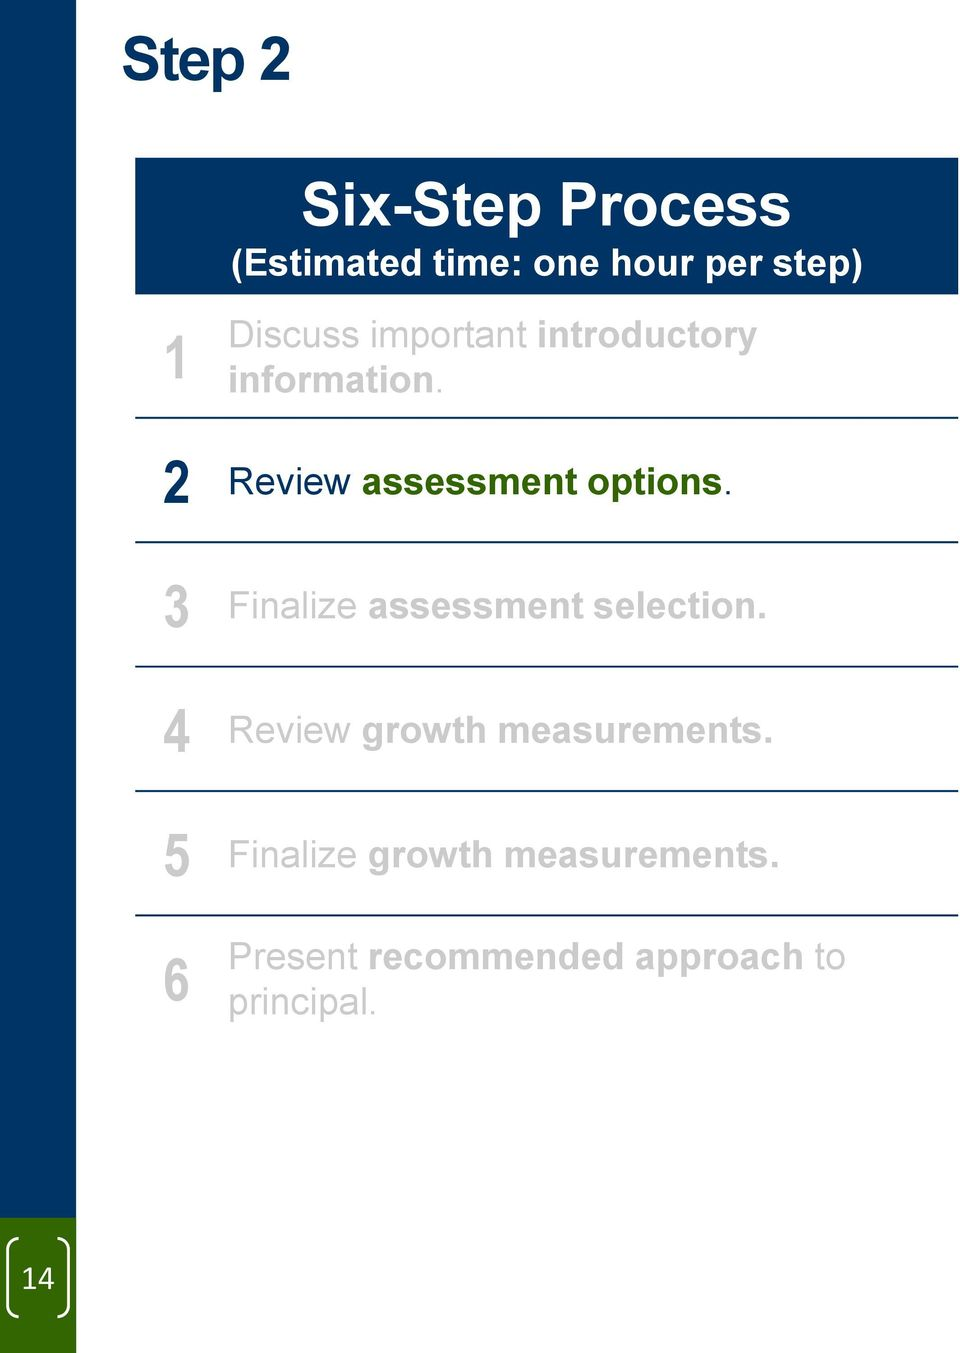 3 Finalize assessment selection. 4 Review growth measurements.